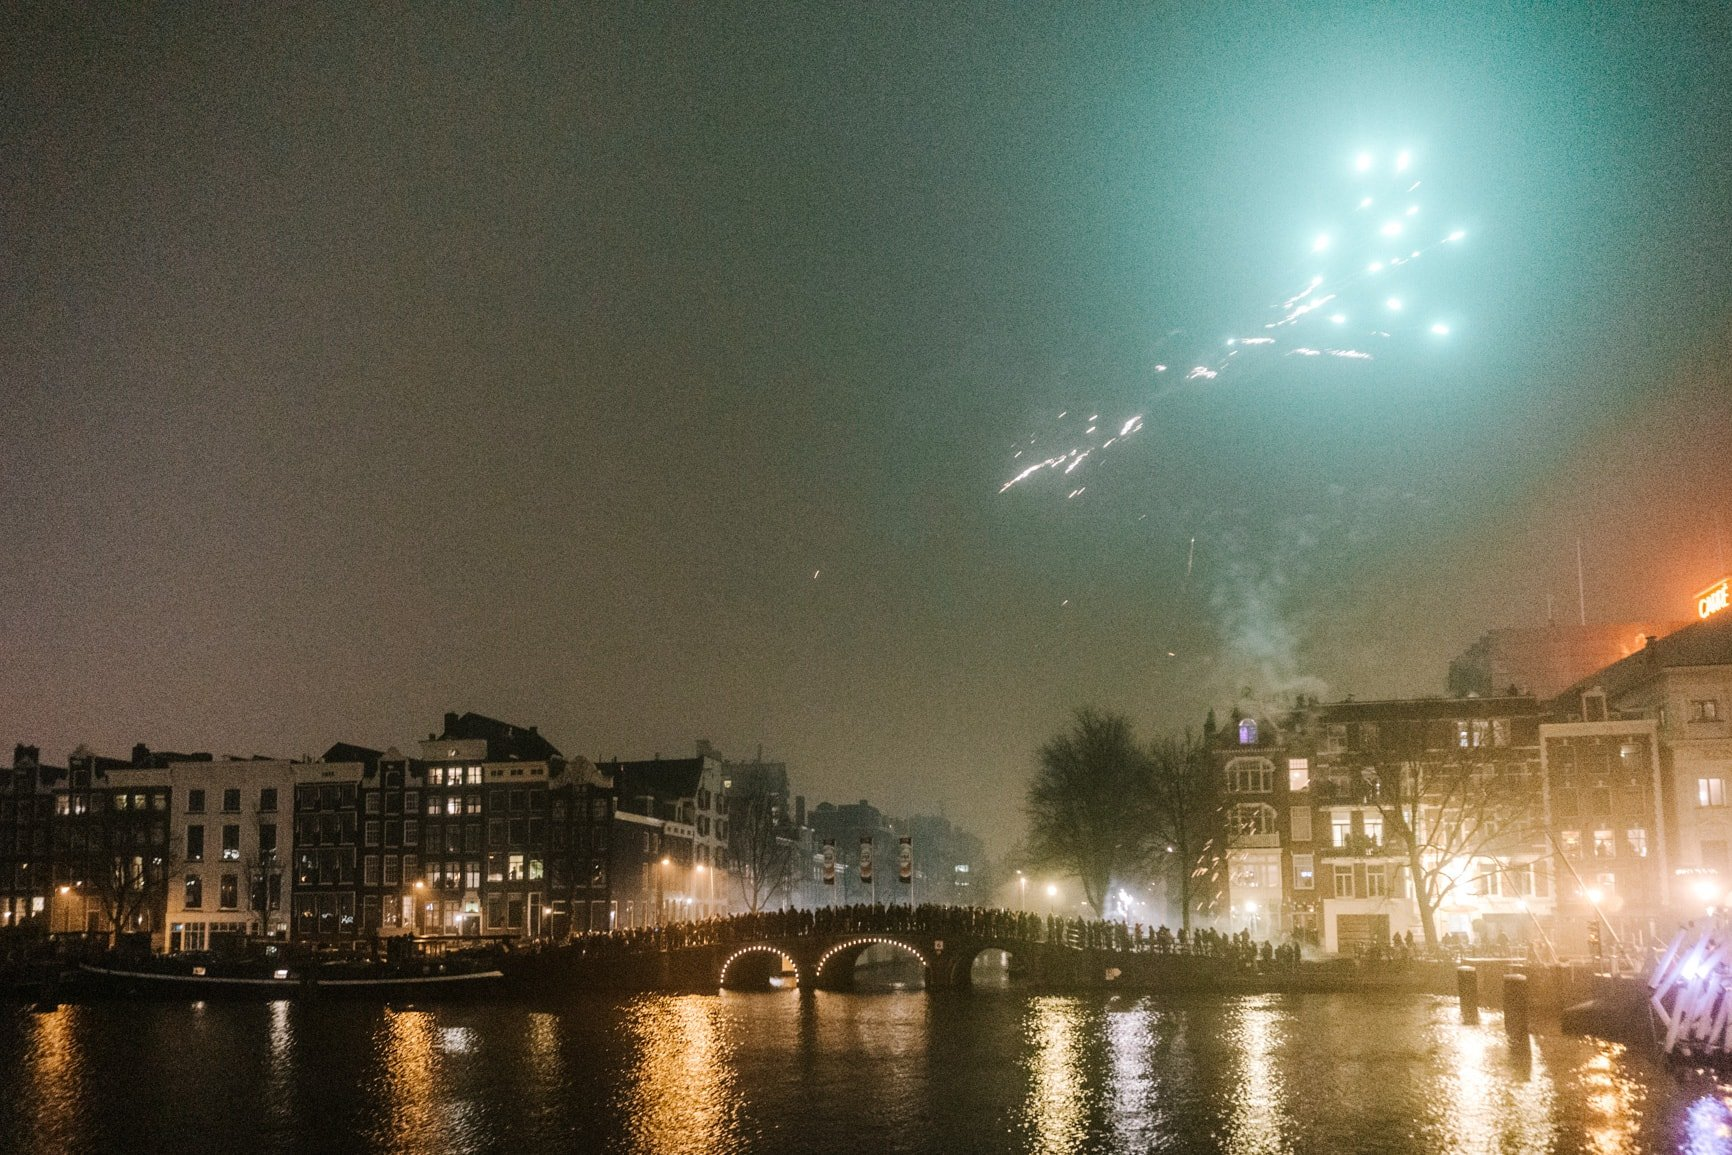 fireworks in amsterdam in december on new year's eve at the skinny brixdge